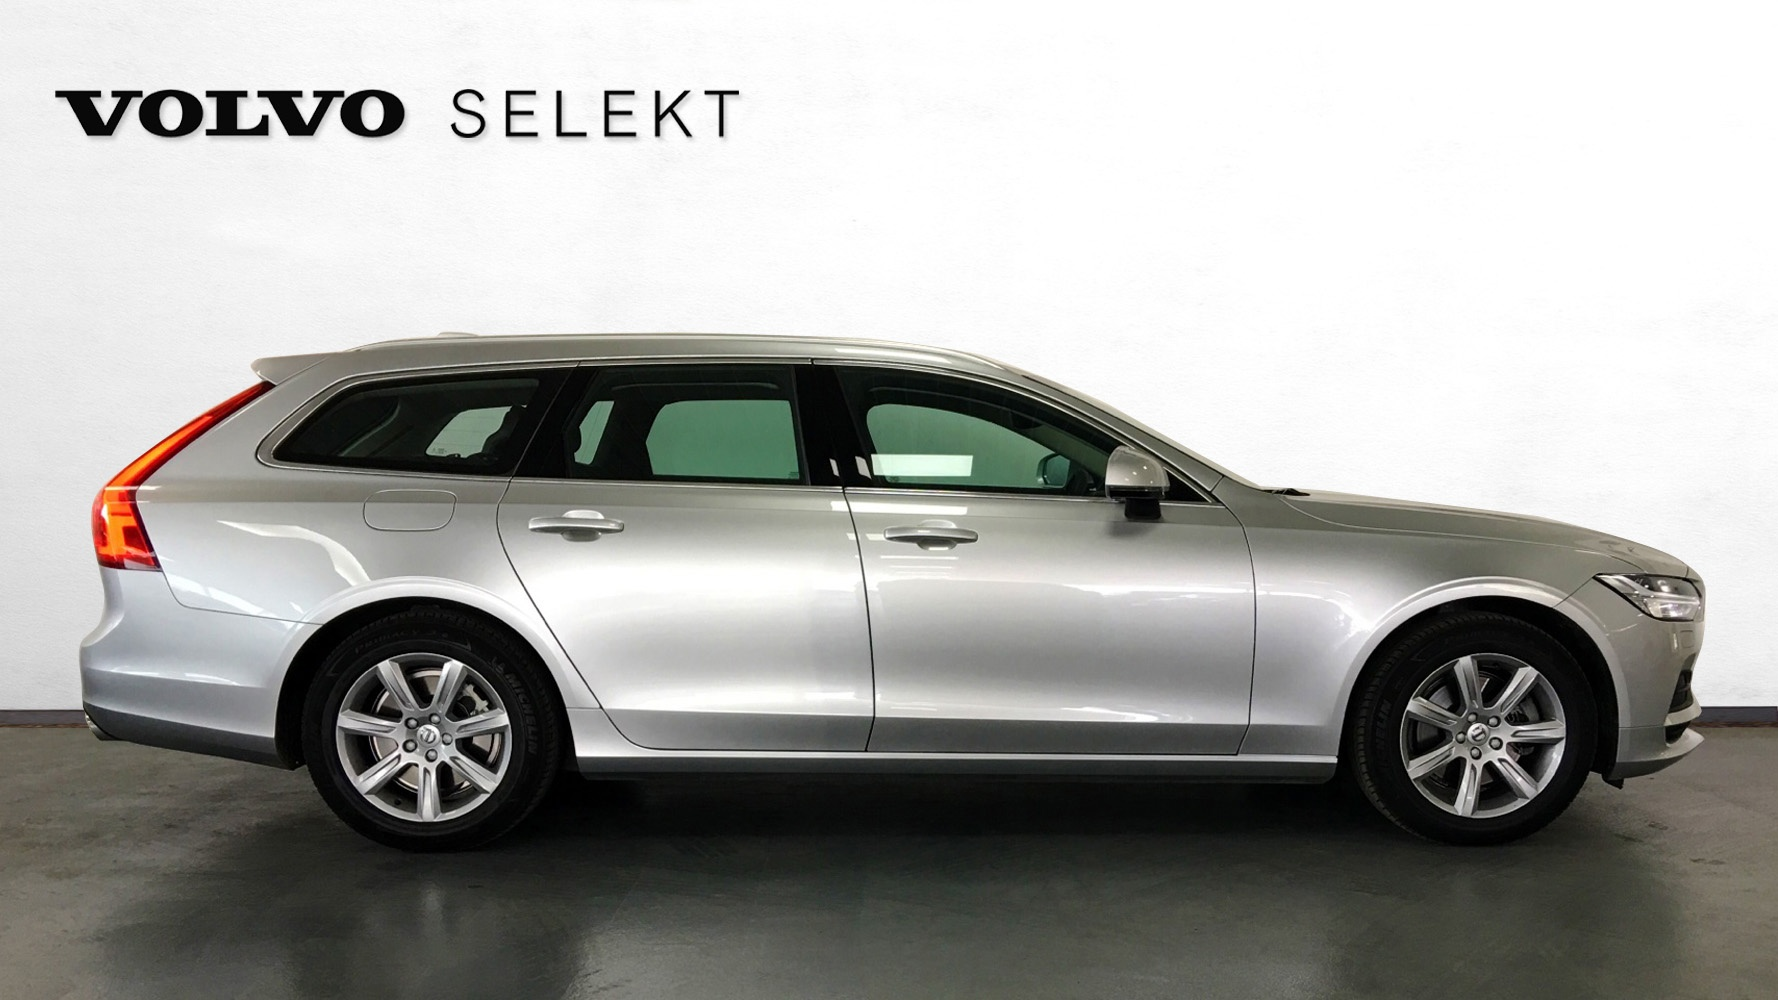 100 volvo selekt volvo xc60 d5 215 bhp se lux nav with panoramic sunroof volvo harrie. Black Bedroom Furniture Sets. Home Design Ideas